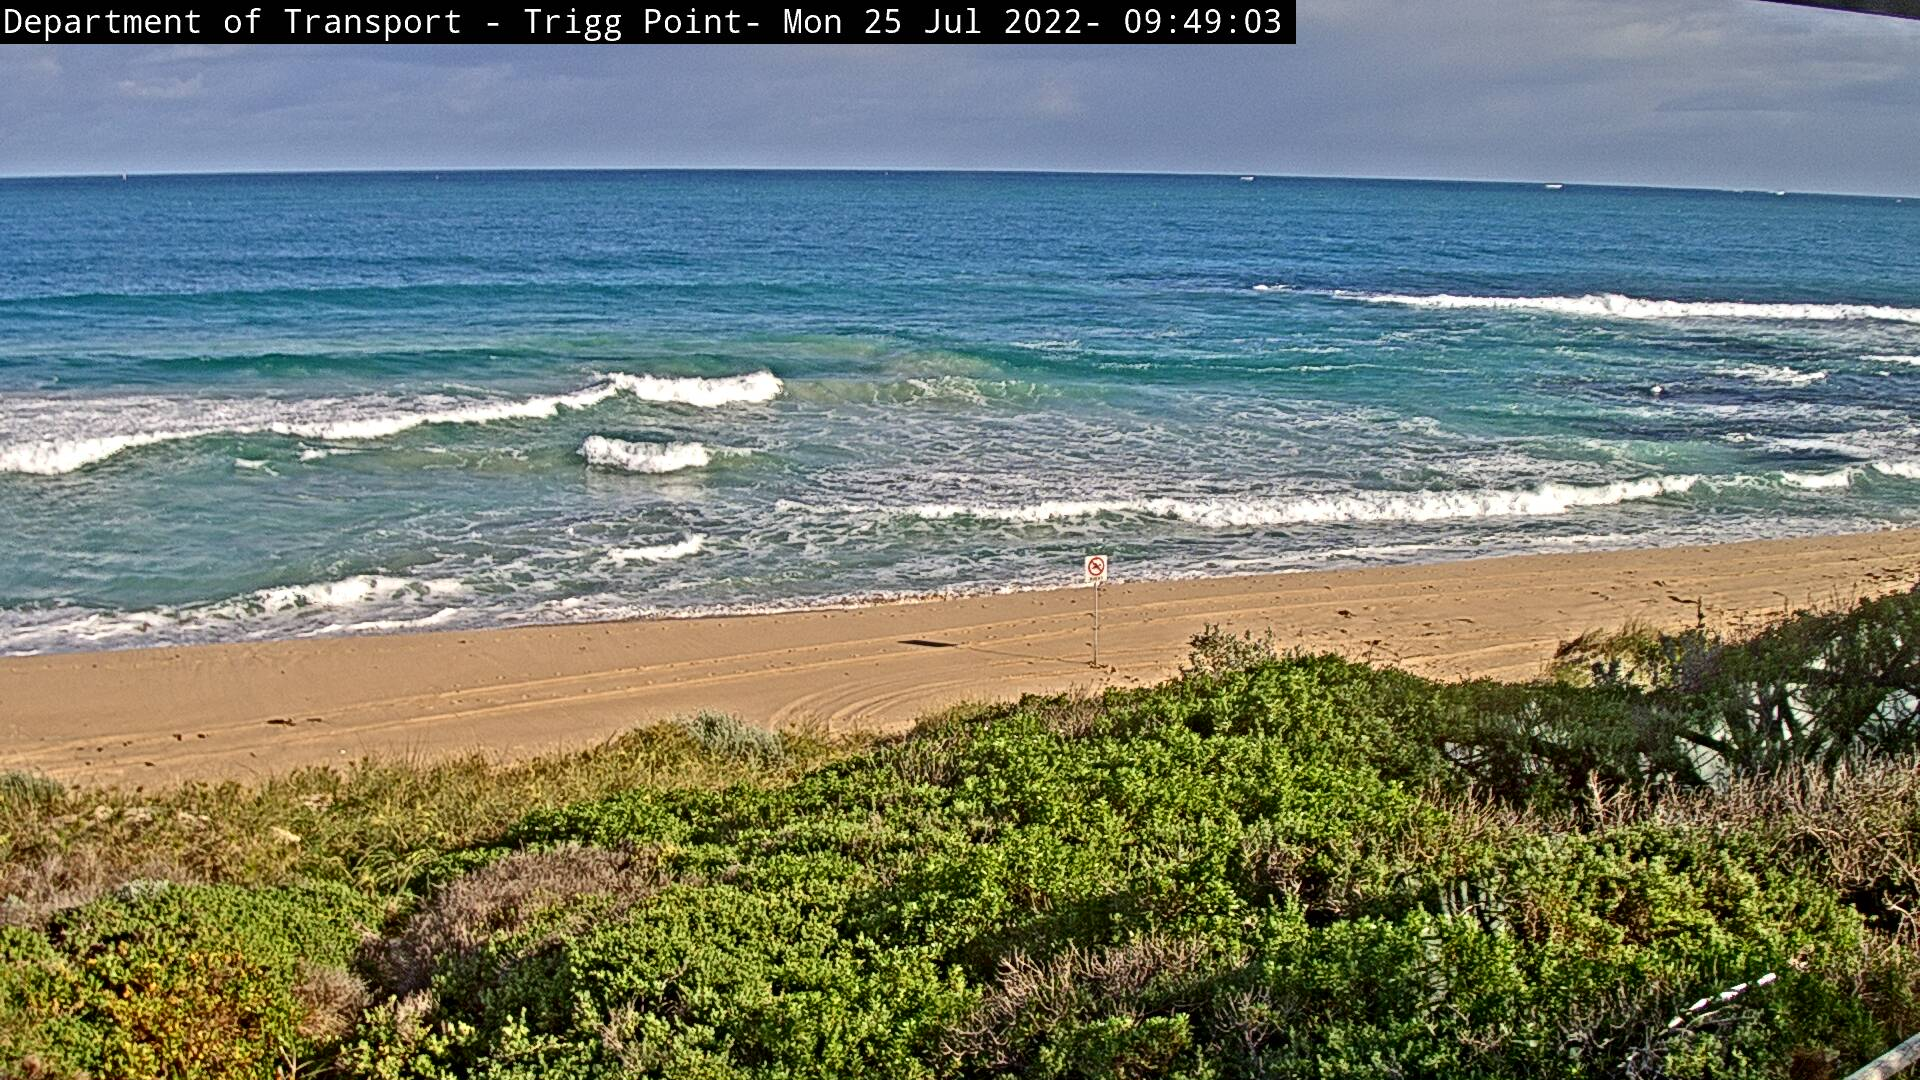 Trigg Point Surf Cam